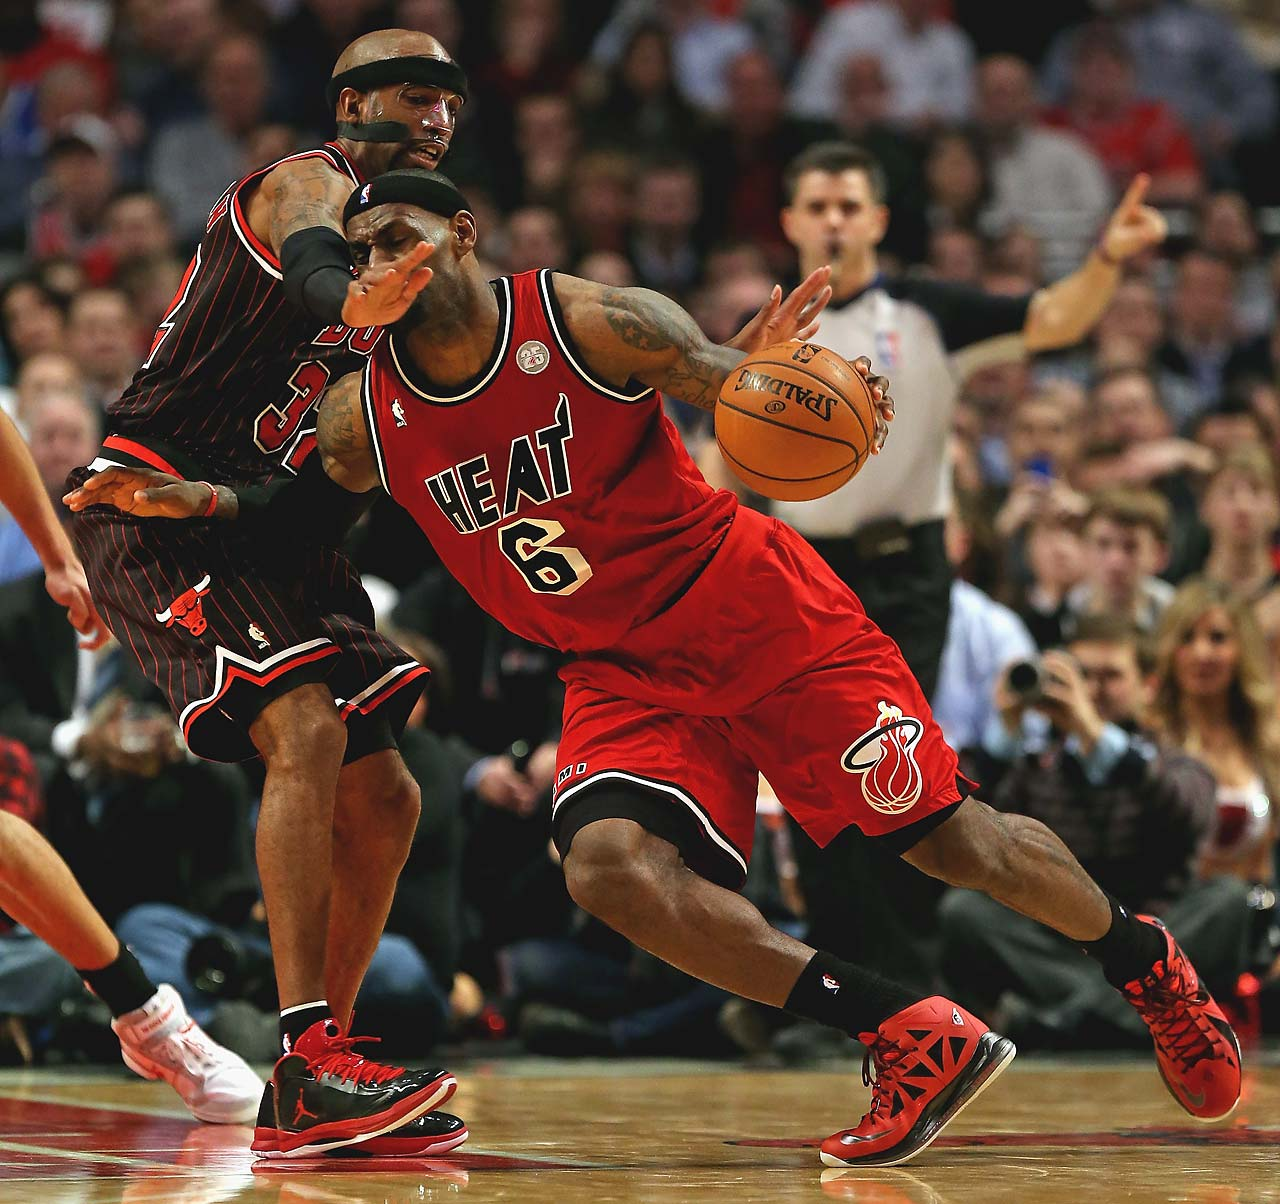 LeBron James is fouled by Richard Hamilton of the Chicago Bulls at the United Center on February 21, 2013 in Chicago.